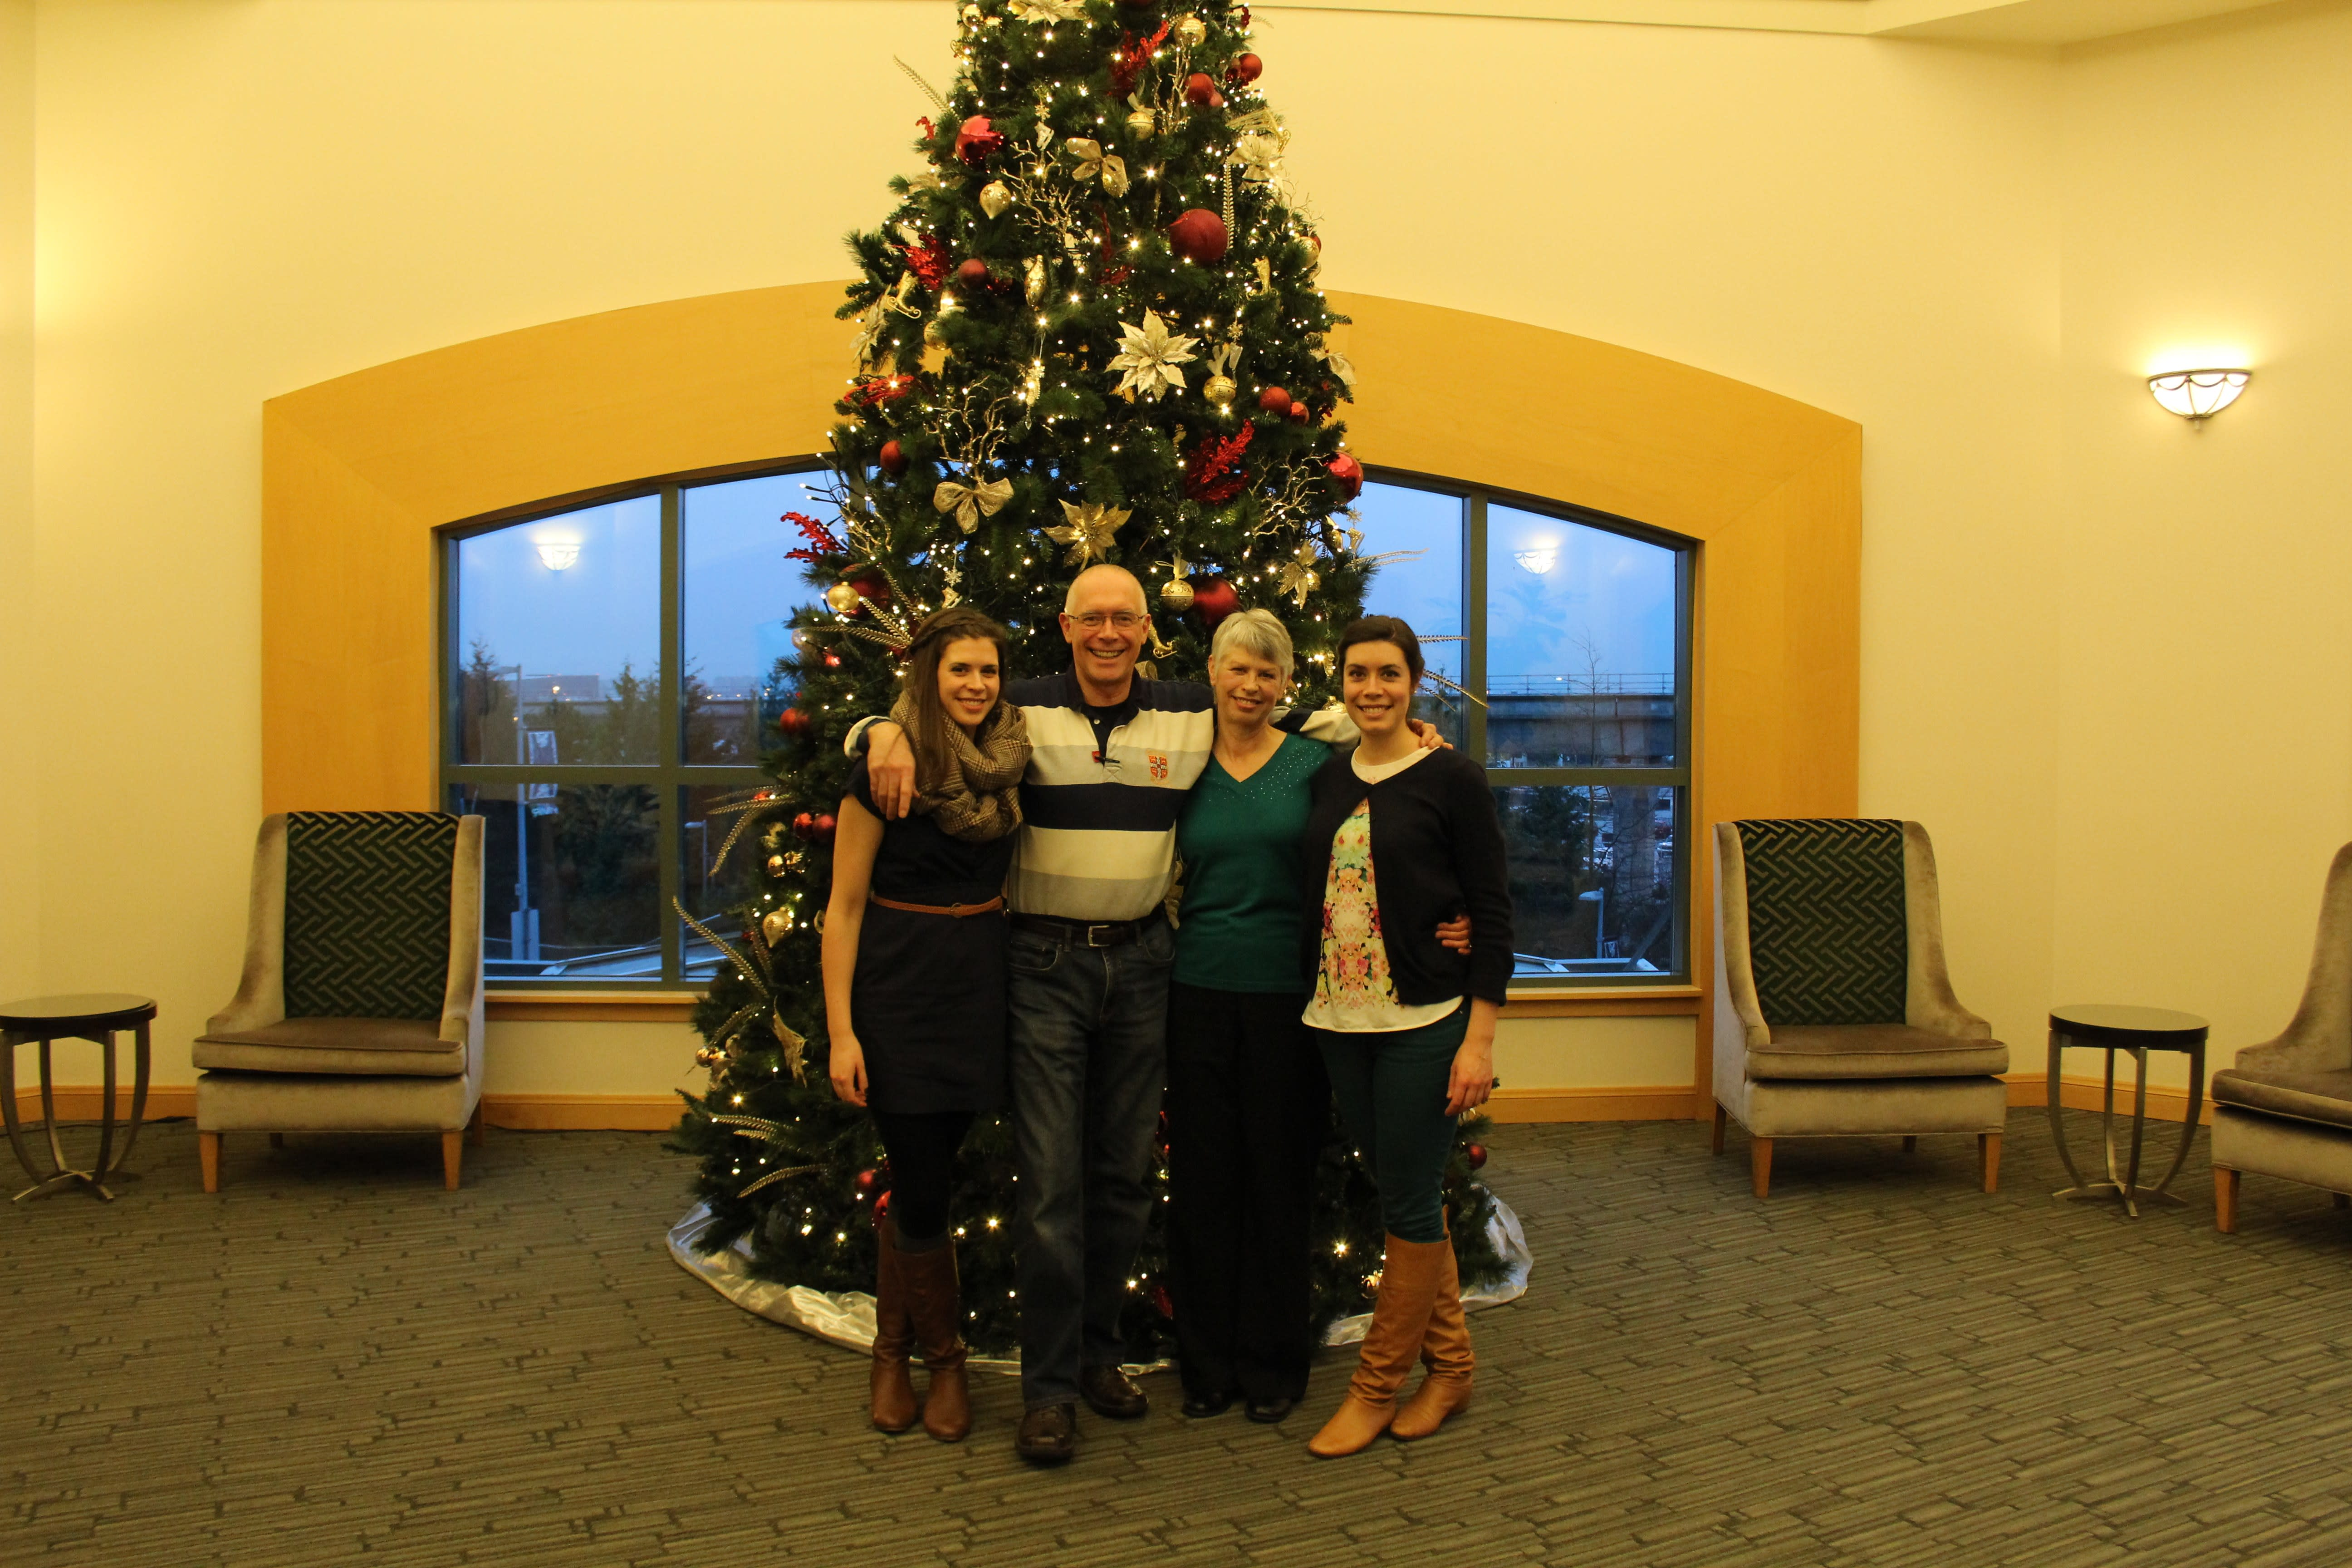 Anderson family at the Fairmont YVR